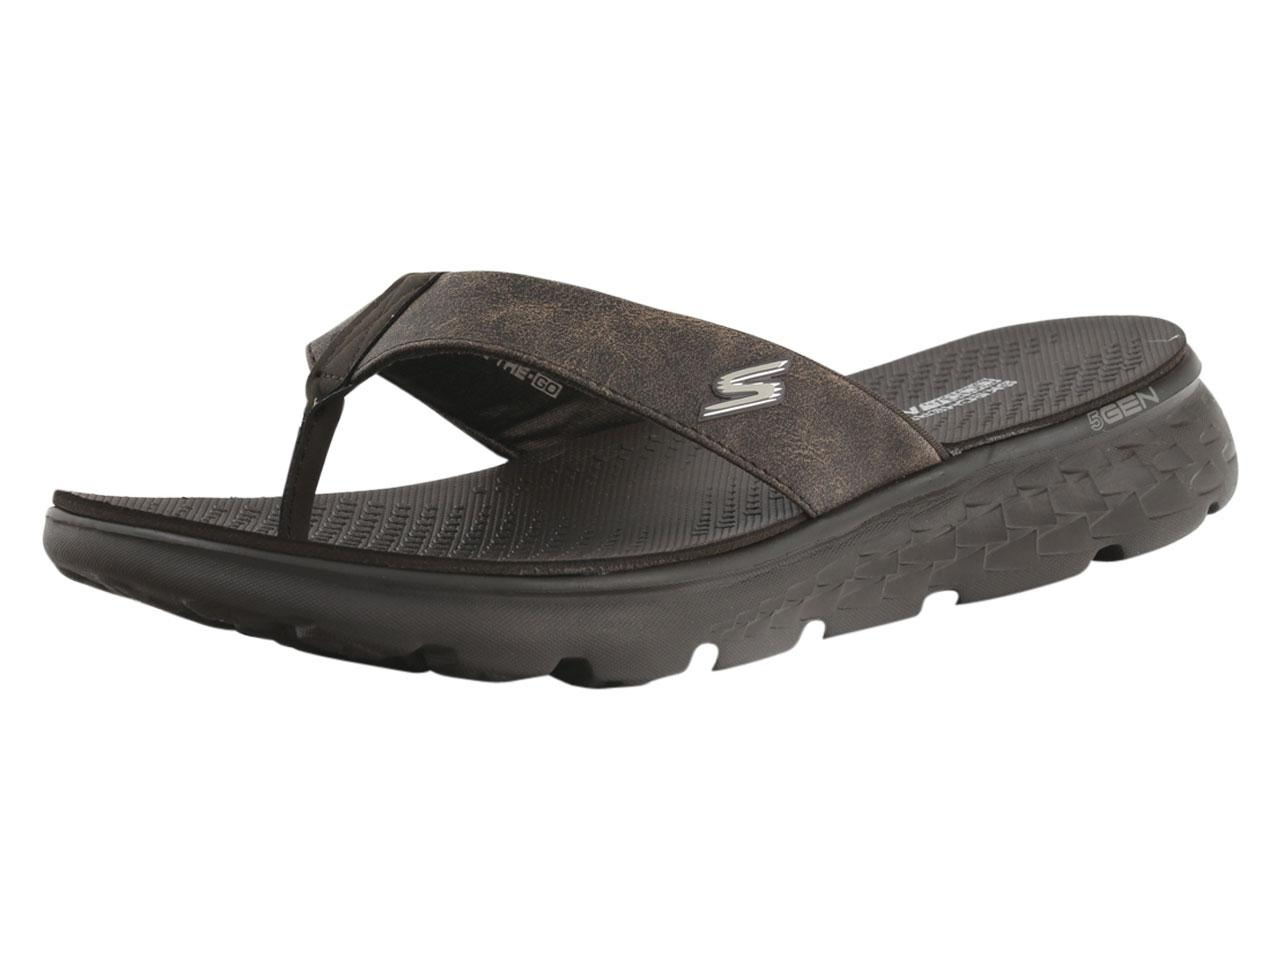 Mens Skechers Sandals Shoes | Kohl's